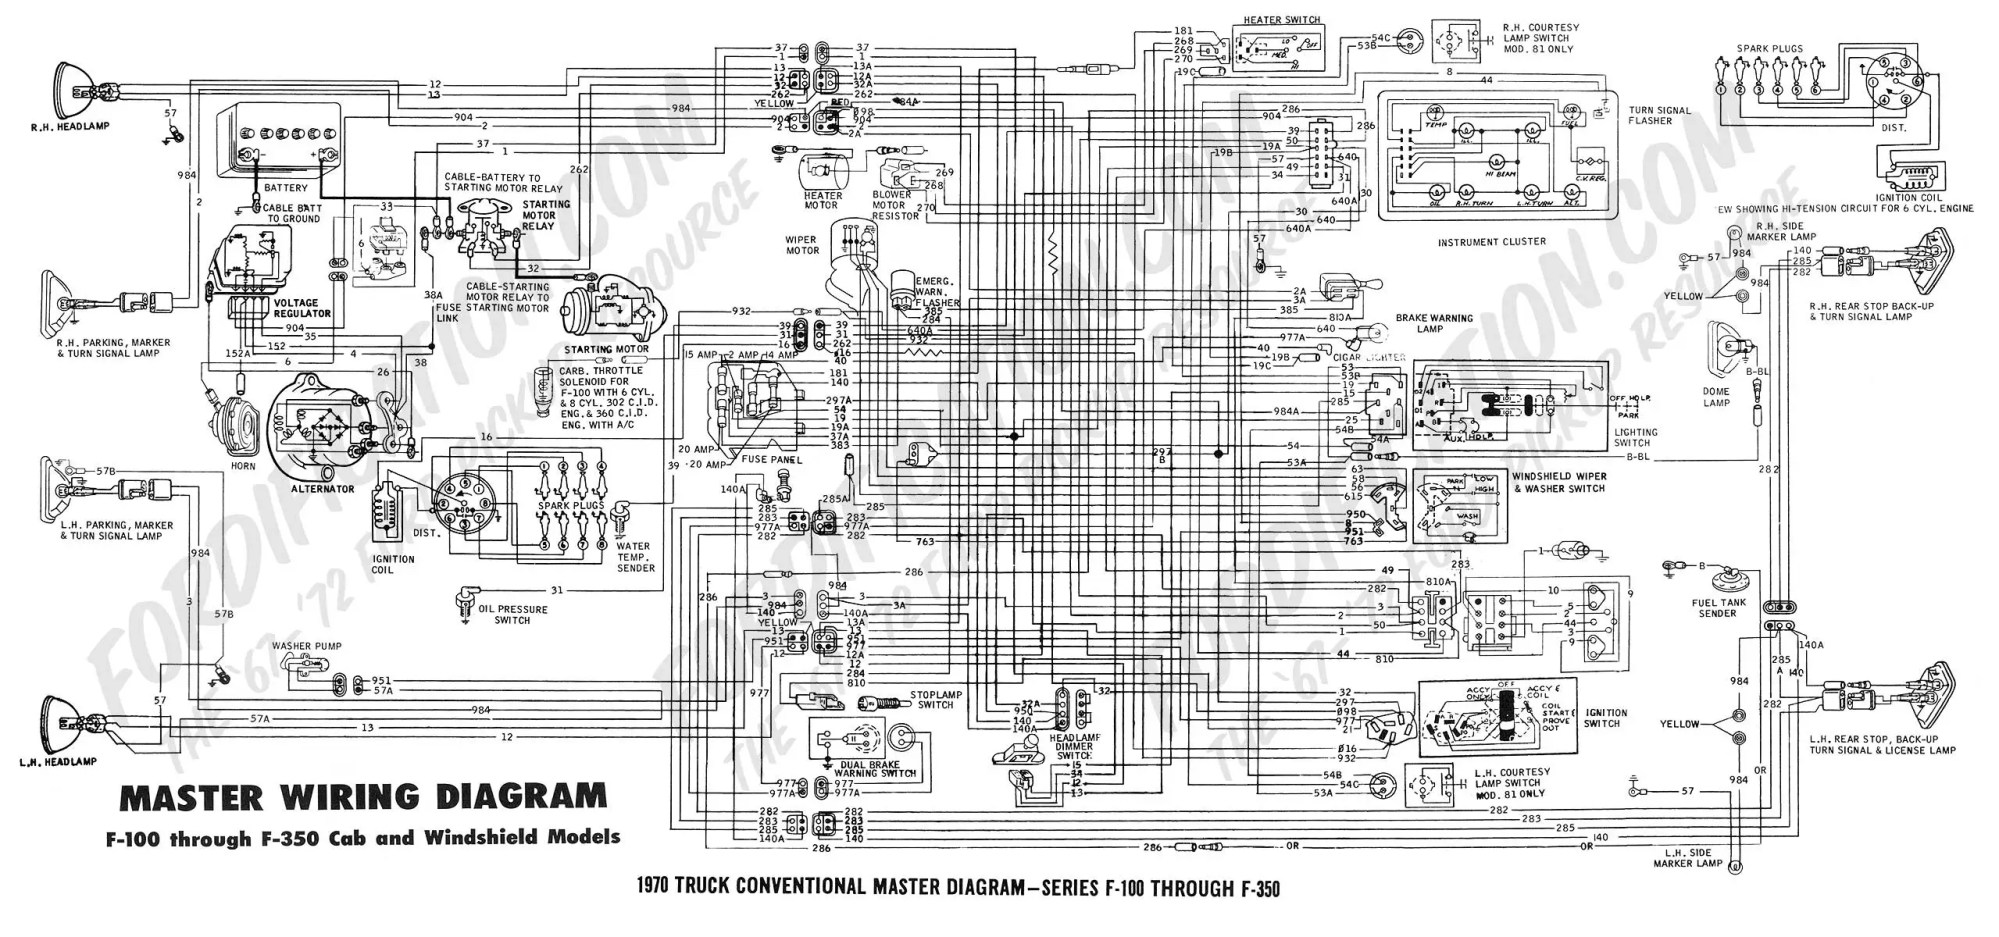 hight resolution of 1966 ford f 250 wiring schematics wiring diagram 1966 ford f250 wiring diagram wiring diagram view1966